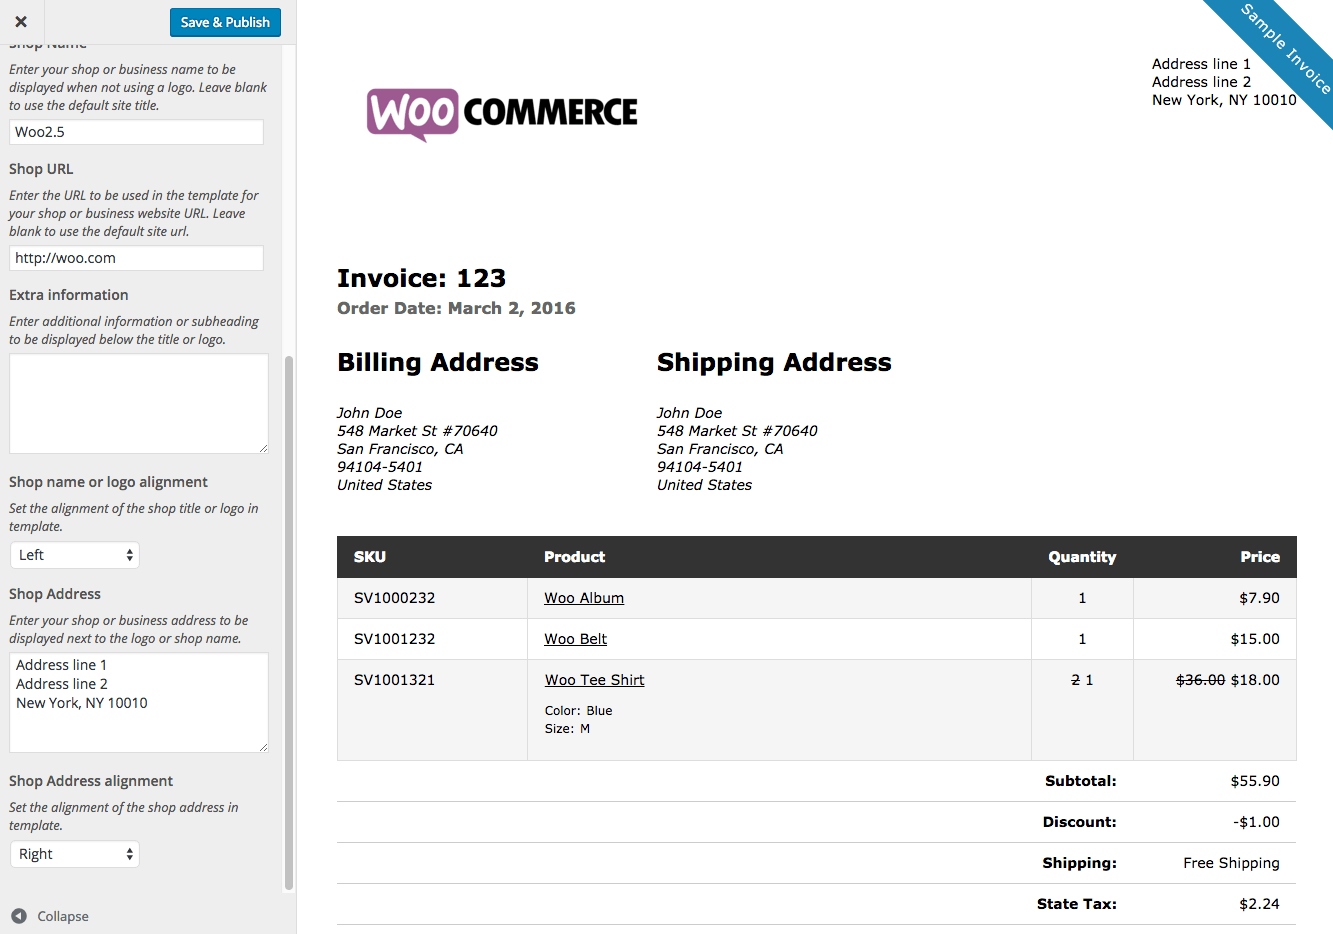 Maidofhonortoastus  Surprising Woocommerce Print Invoices Amp Packing Lists  Woocommerce Docs With Engaging Woocommerce Print Invoices  Packing Lists Customizer With Extraordinary London Taxi Receipt Also Receipts Samples In Addition Keep Receipts For Taxes And Paid Receipt Template Word As Well As Portable Bluetooth Receipt Printer Additionally Car Service Receipt Template From Docswoocommercecom With Maidofhonortoastus  Engaging Woocommerce Print Invoices Amp Packing Lists  Woocommerce Docs With Extraordinary Woocommerce Print Invoices  Packing Lists Customizer And Surprising London Taxi Receipt Also Receipts Samples In Addition Keep Receipts For Taxes From Docswoocommercecom